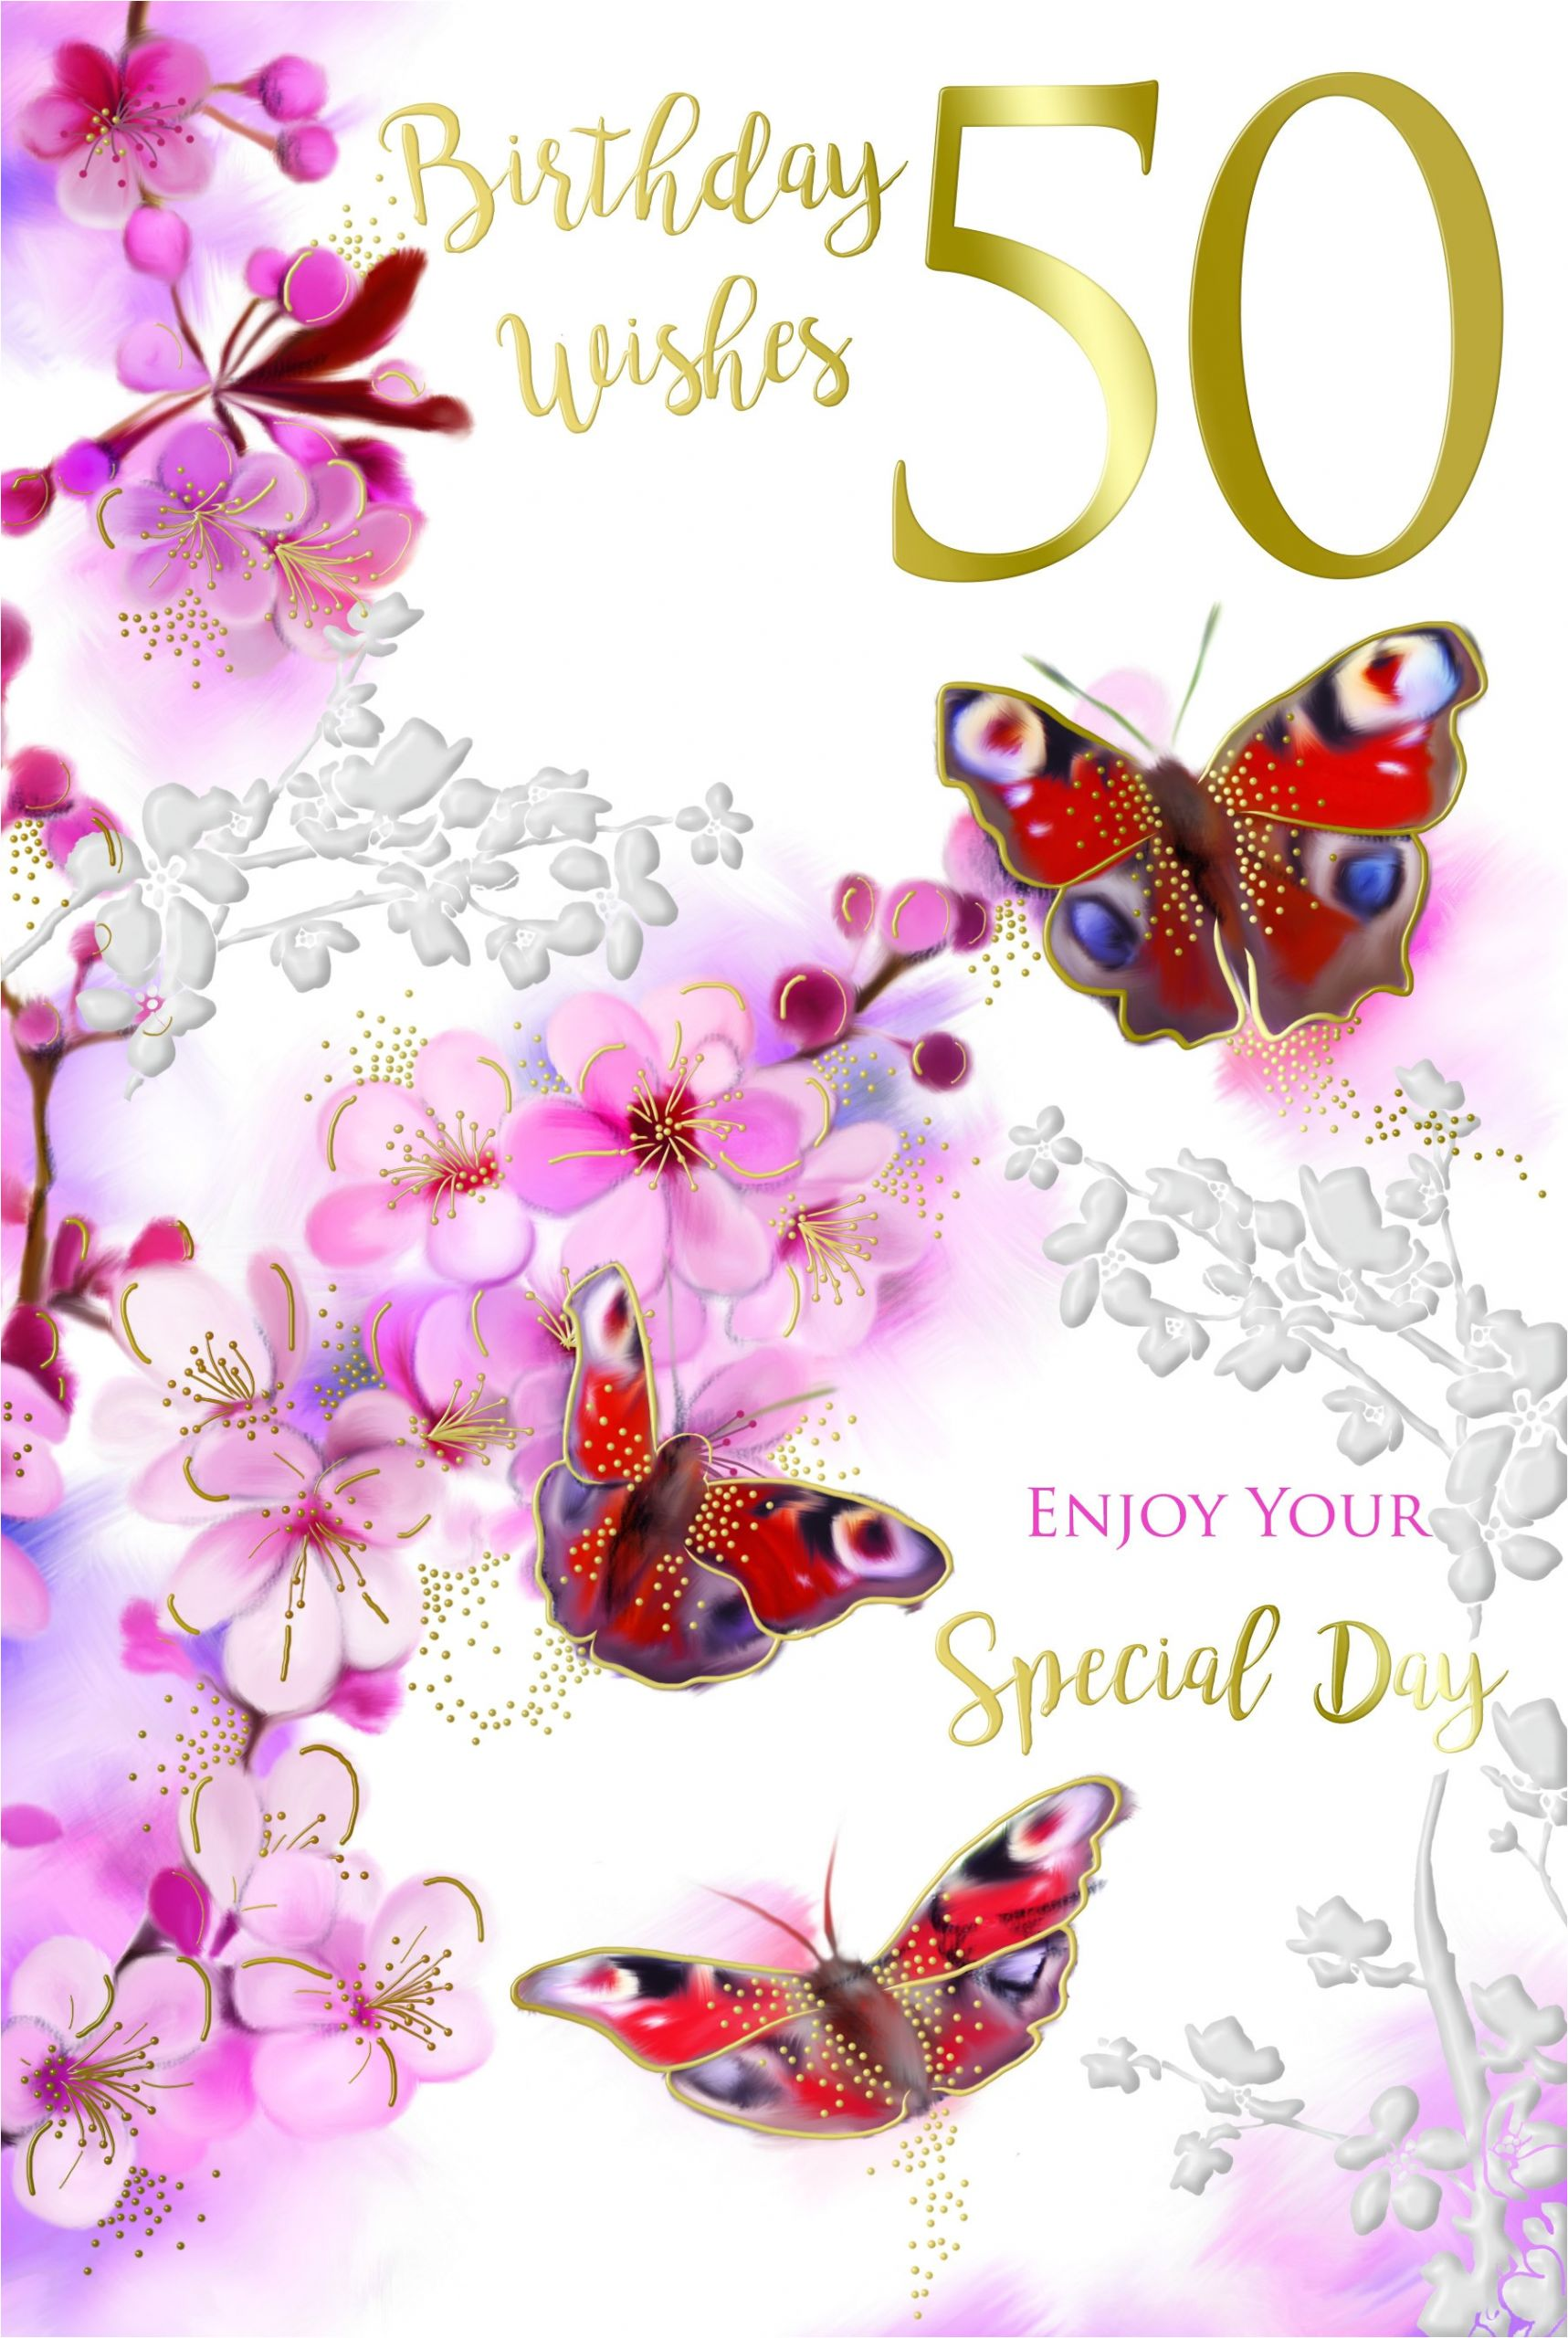 50th 50 special day bright flowers butterflies design happy birthday card jpg